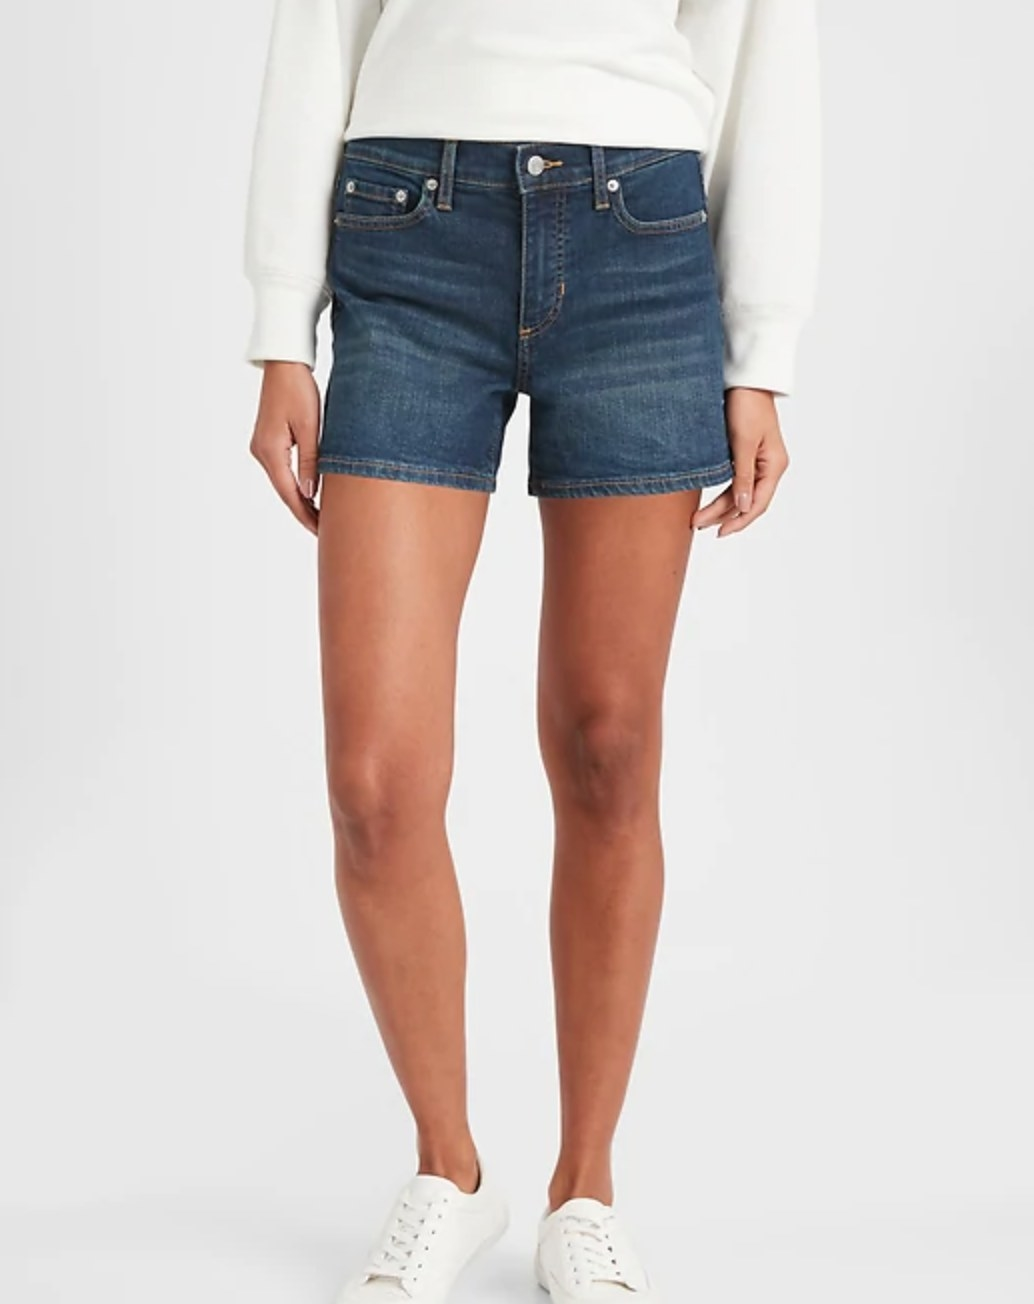 The pair of dark wash denim shorts in a 4 inch rise